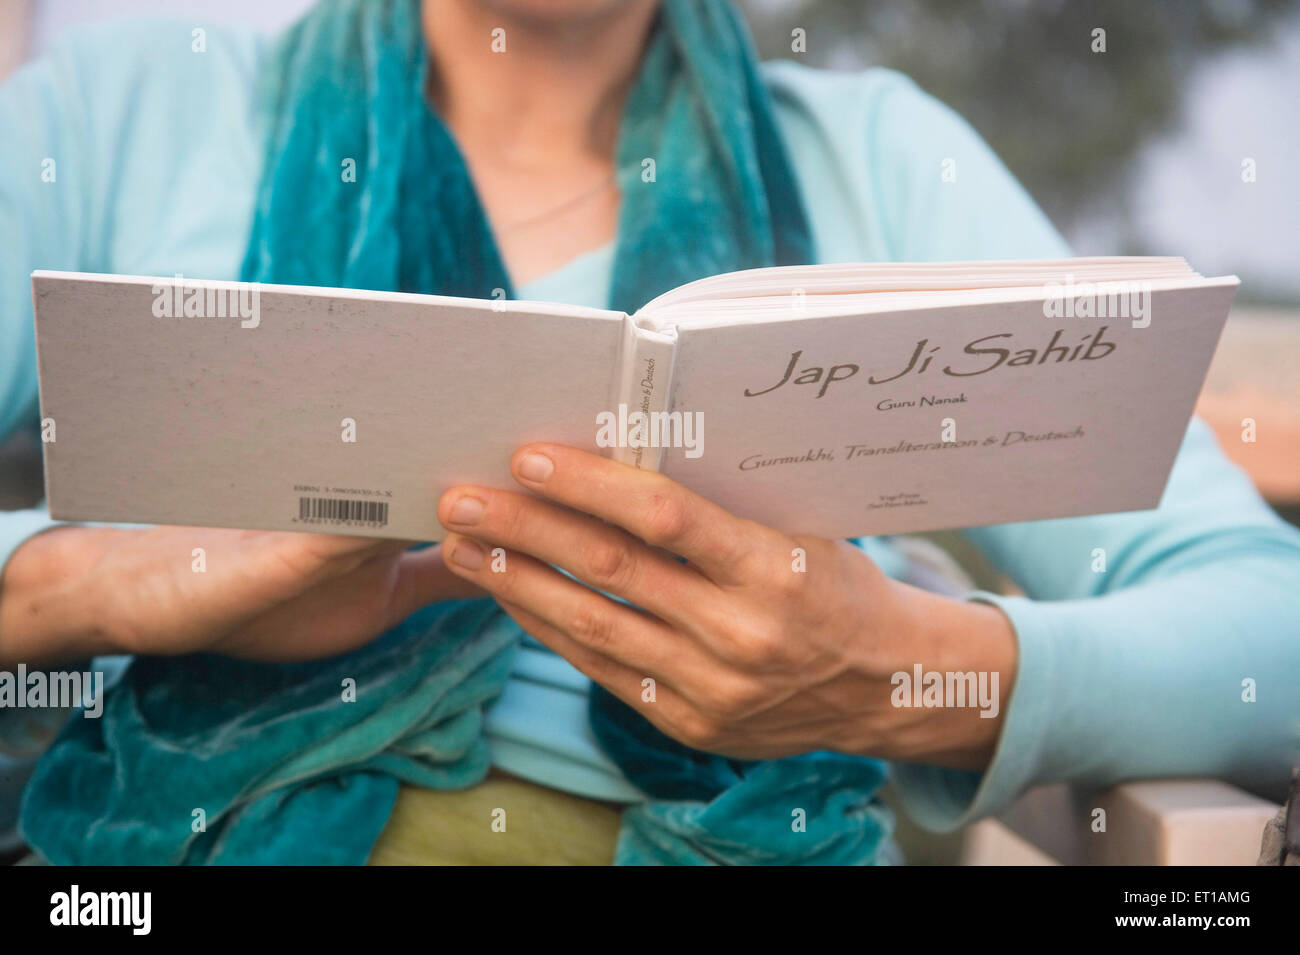 German woman praying holding Jap Ji Sahib Prayer book of the Sikh religion ; Tajgunj ; Agra ; Uttar Pradesh ; India - Stock Image